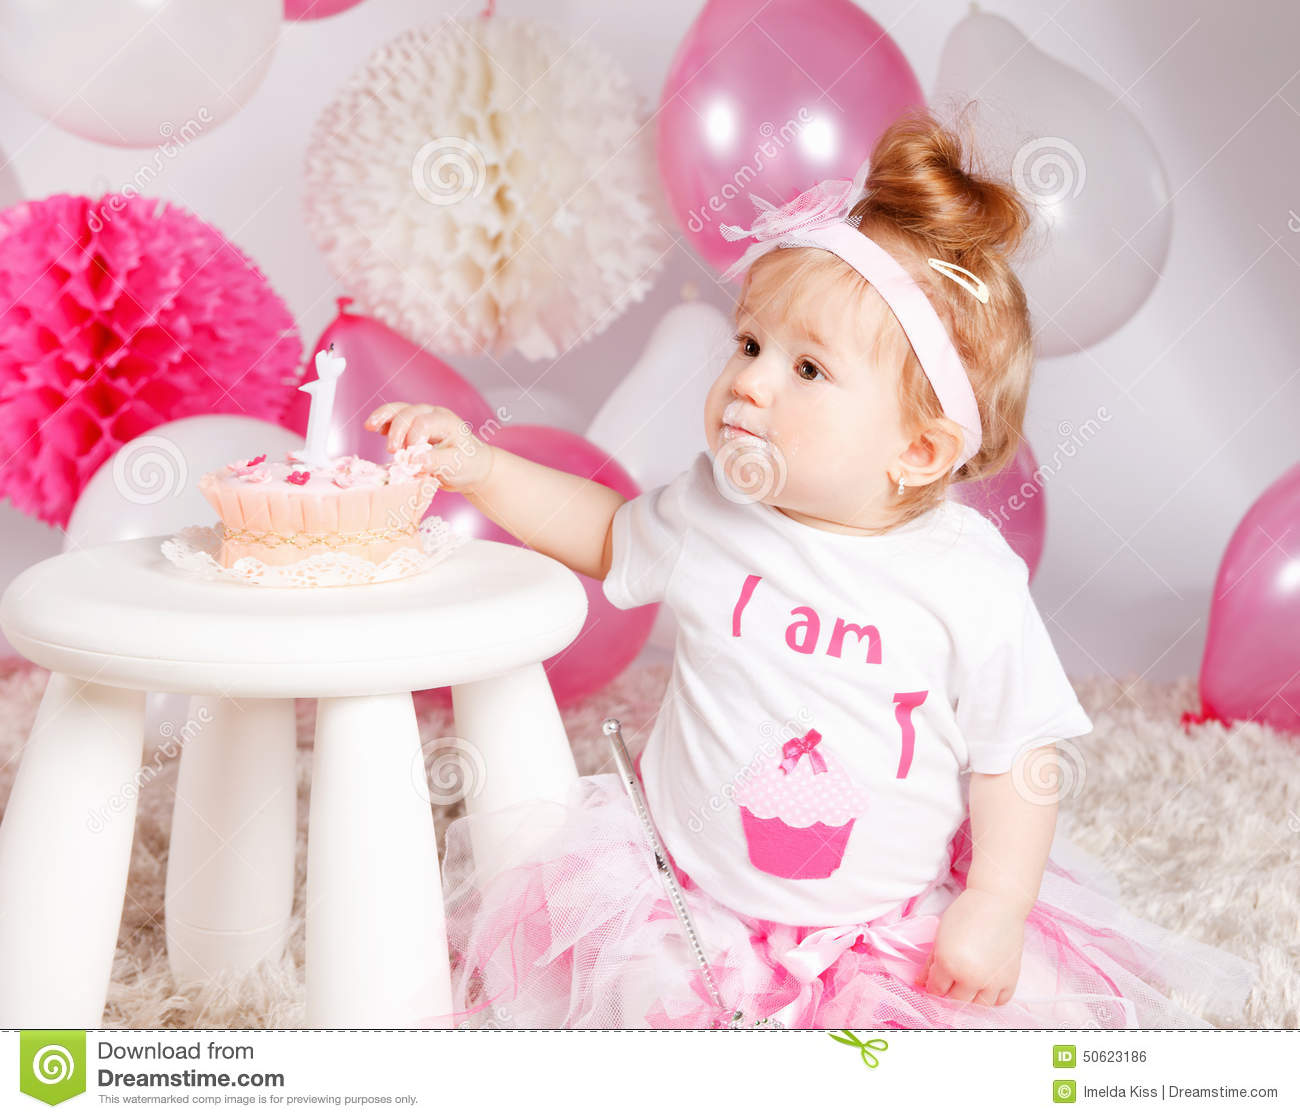 Cute Baby Eating The Birthday Cake Stock Photo - Image ...